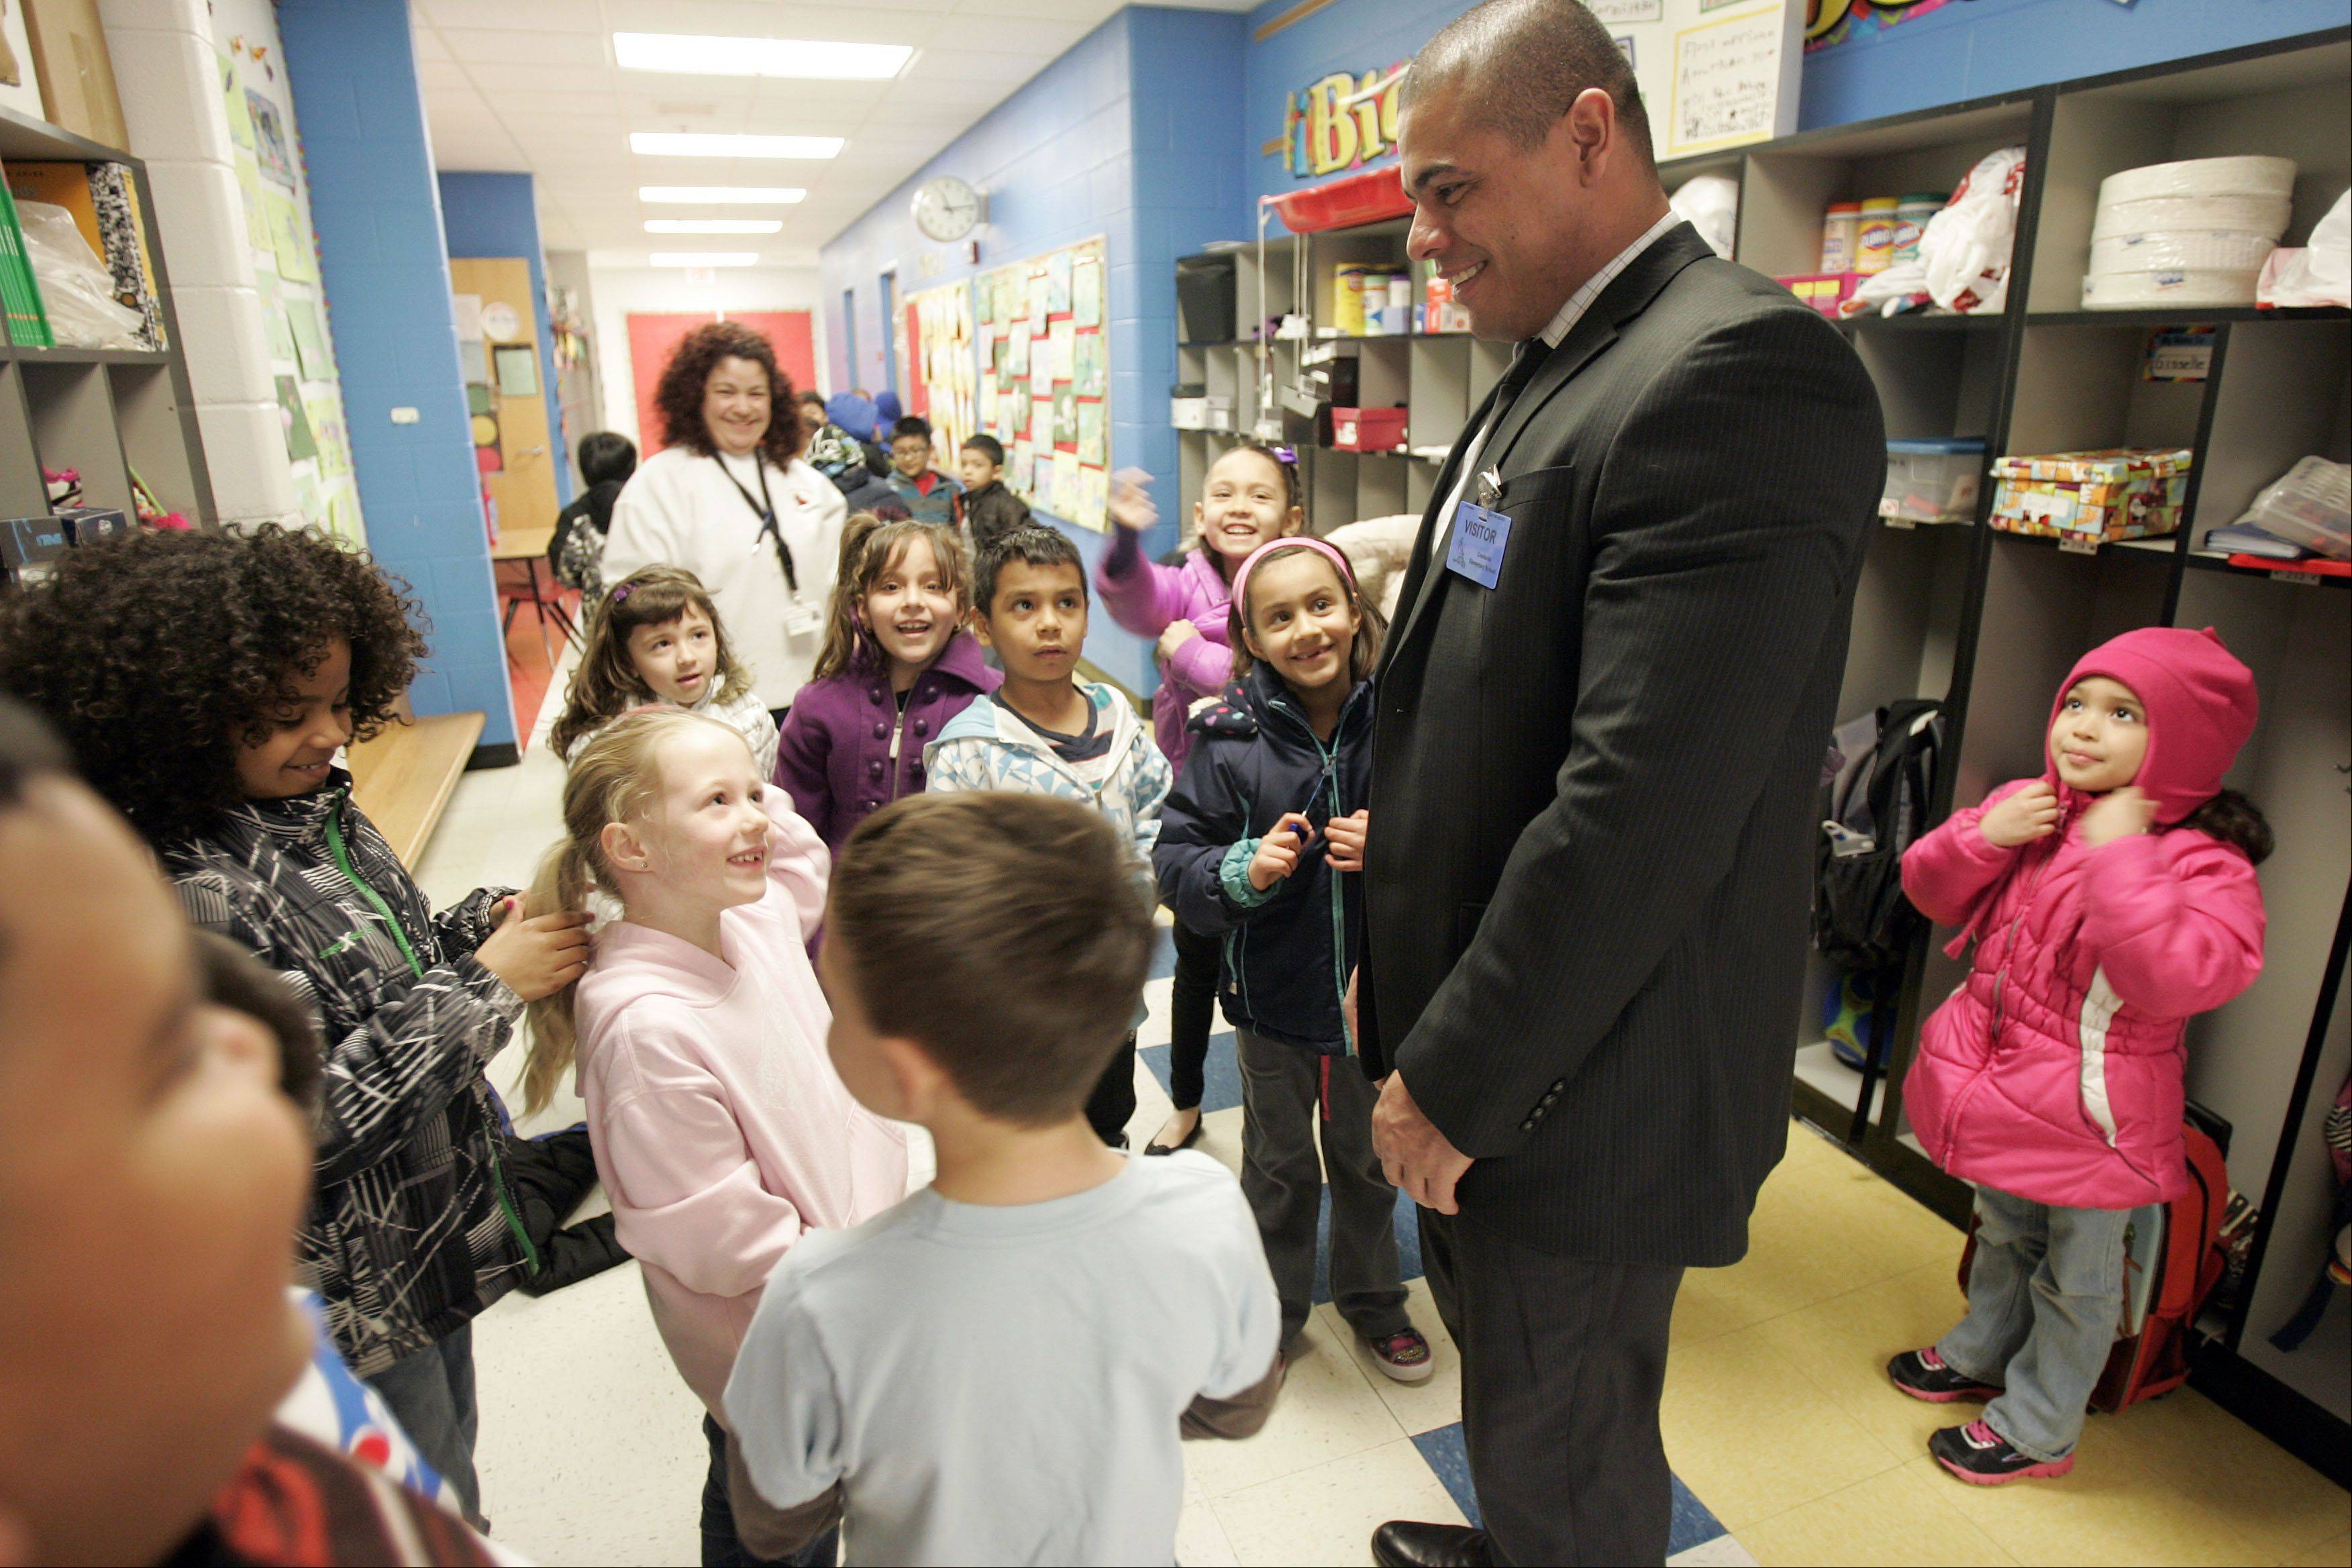 Resident Officer Eric Echevarria of the Elgin Police Department, jokes around with some of the students as he tours the halls of Creekside Elementary School in Elgin Friday serving as the principal for a day.